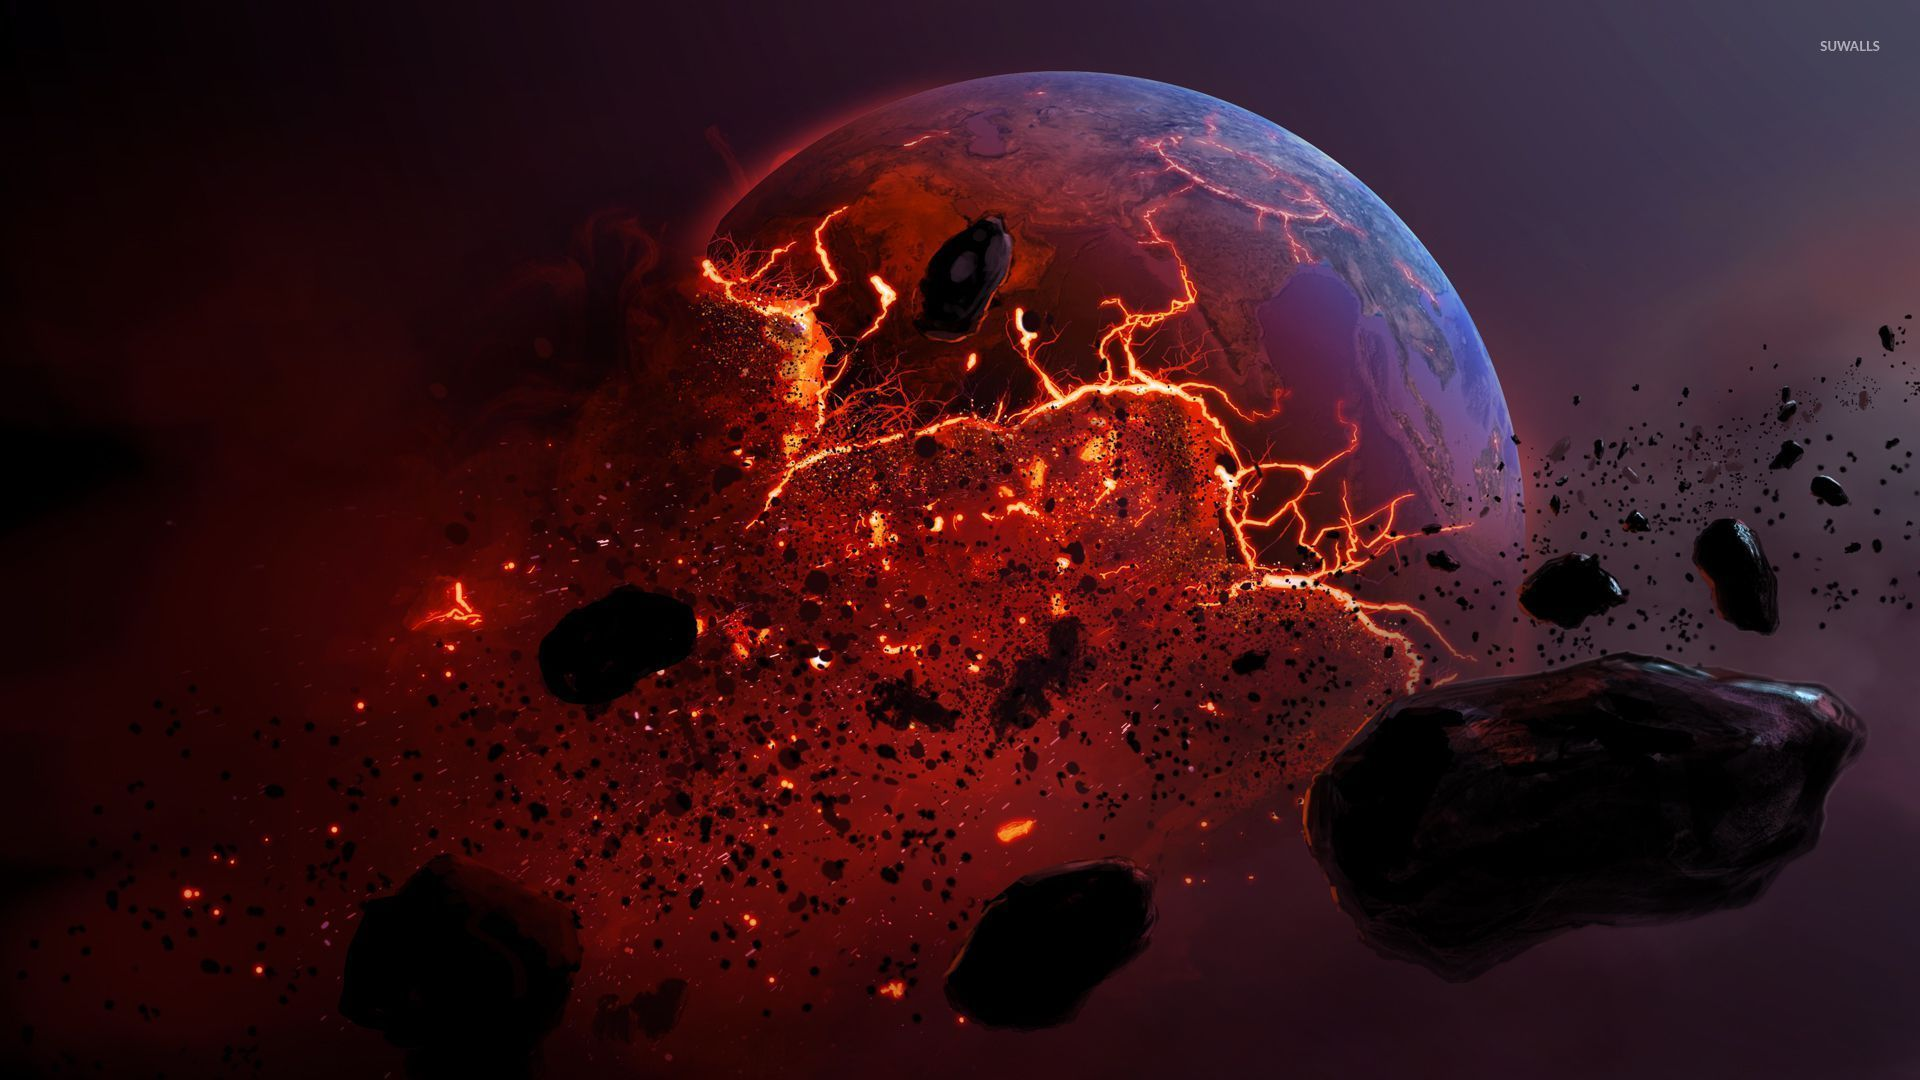 exploding planets wallpapersfor laptops - photo #23